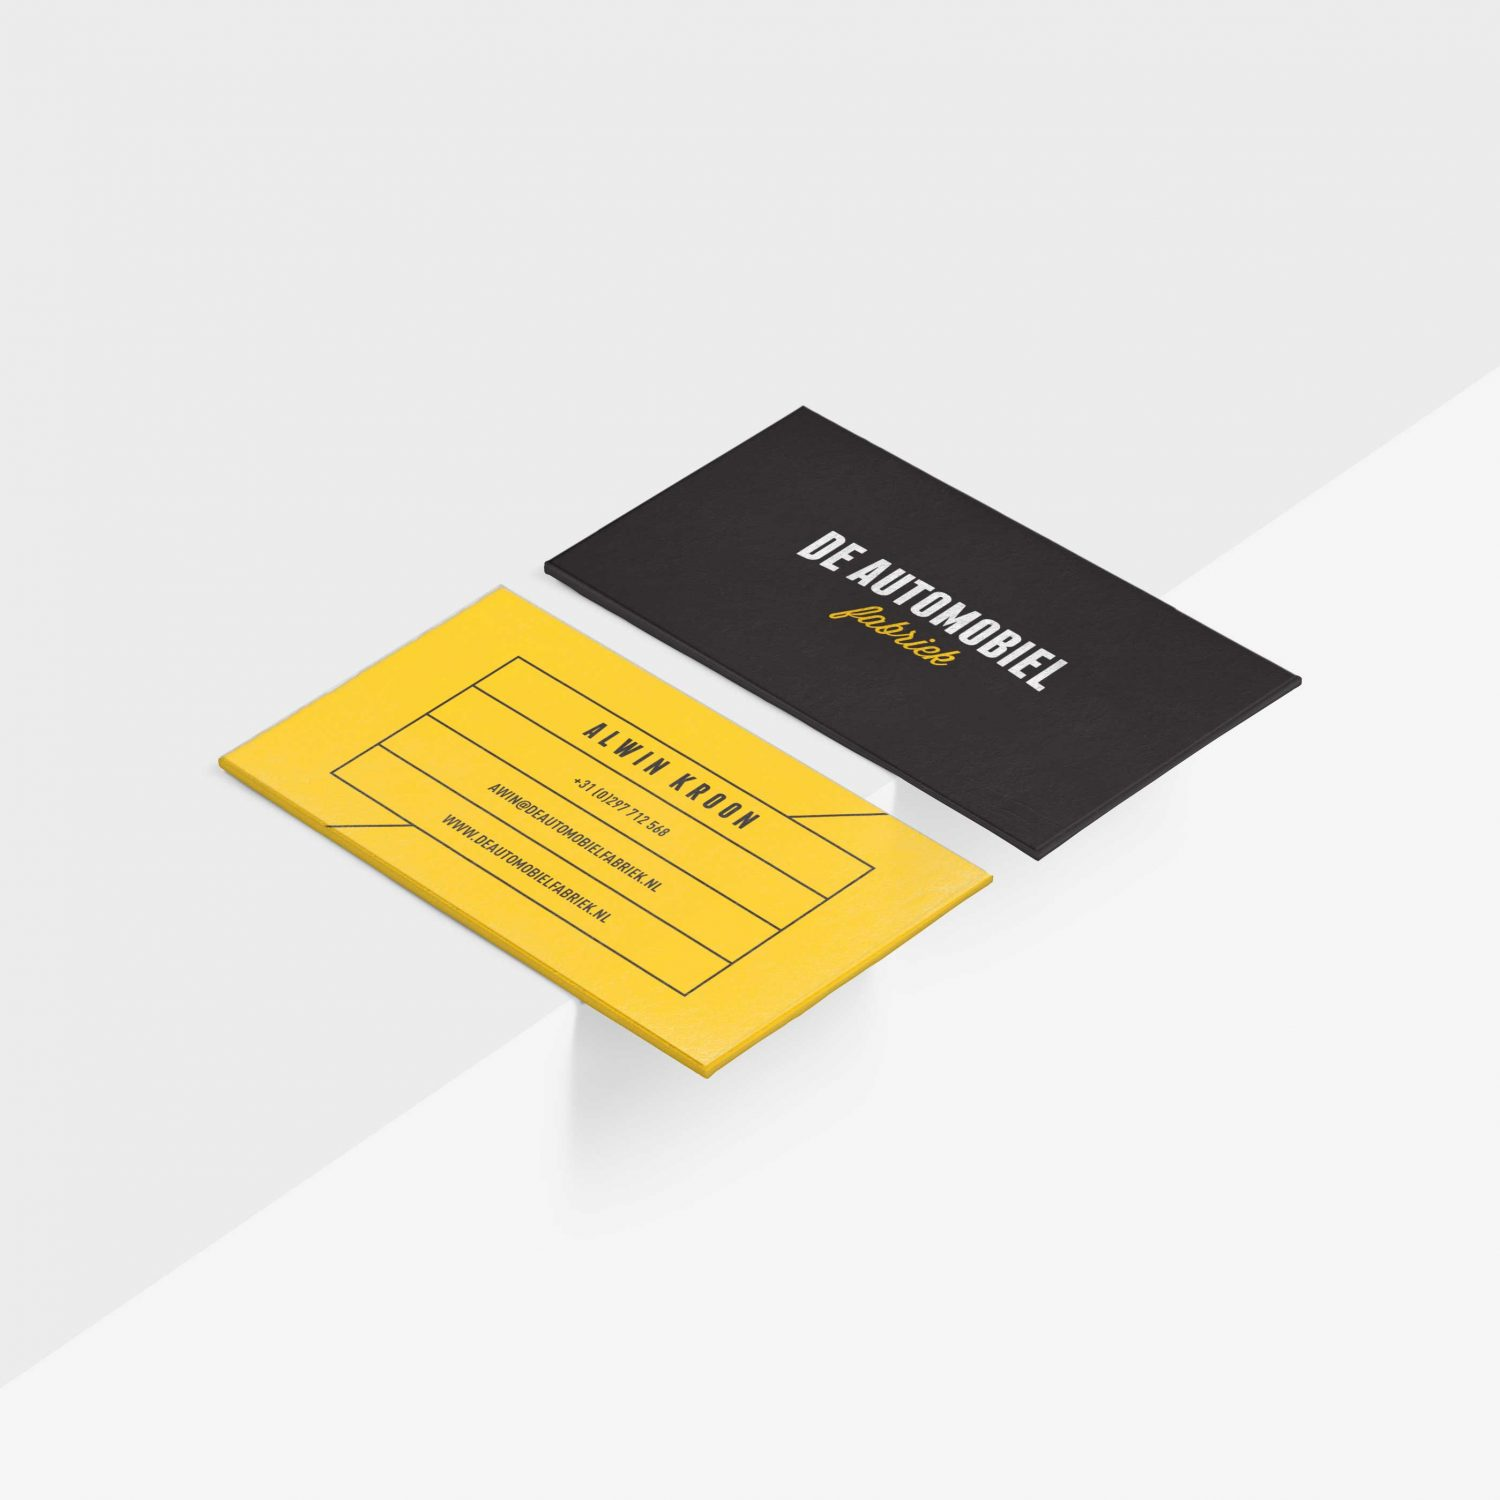 Barrica business cards sebastiaan gamelkoorn creative freelancer de automobielfabriek business cards reheart Images